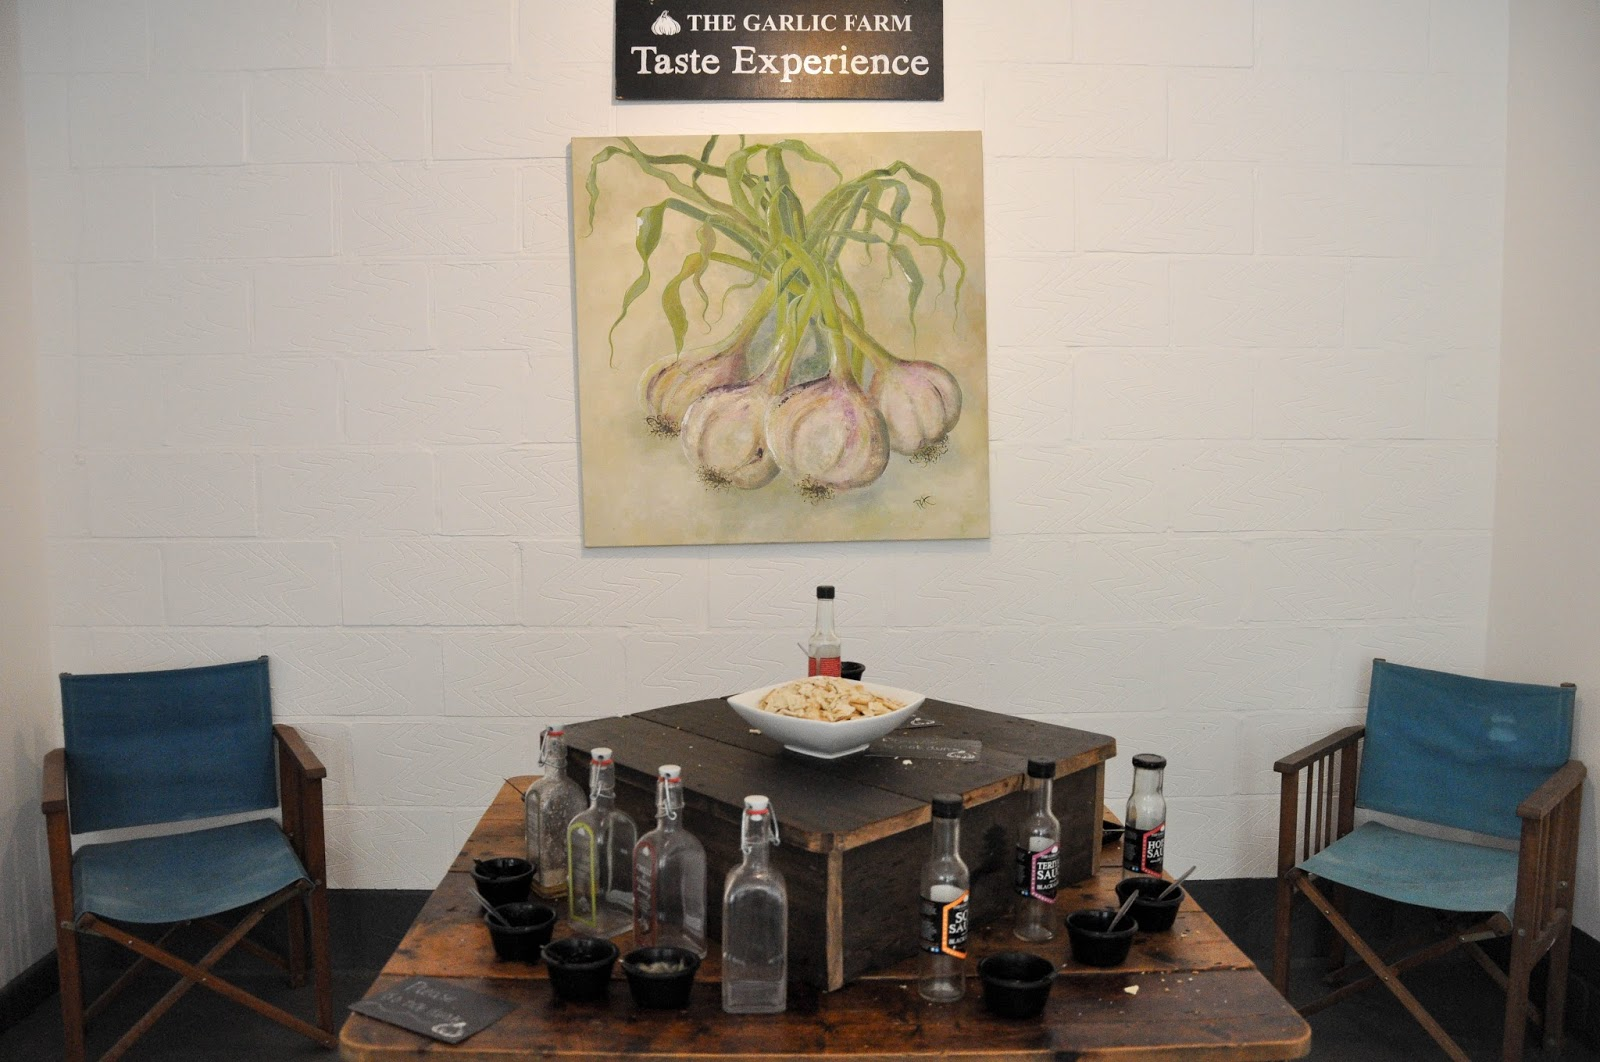 Taste Experience, The Garlic Farm, Isle of Wight, UK